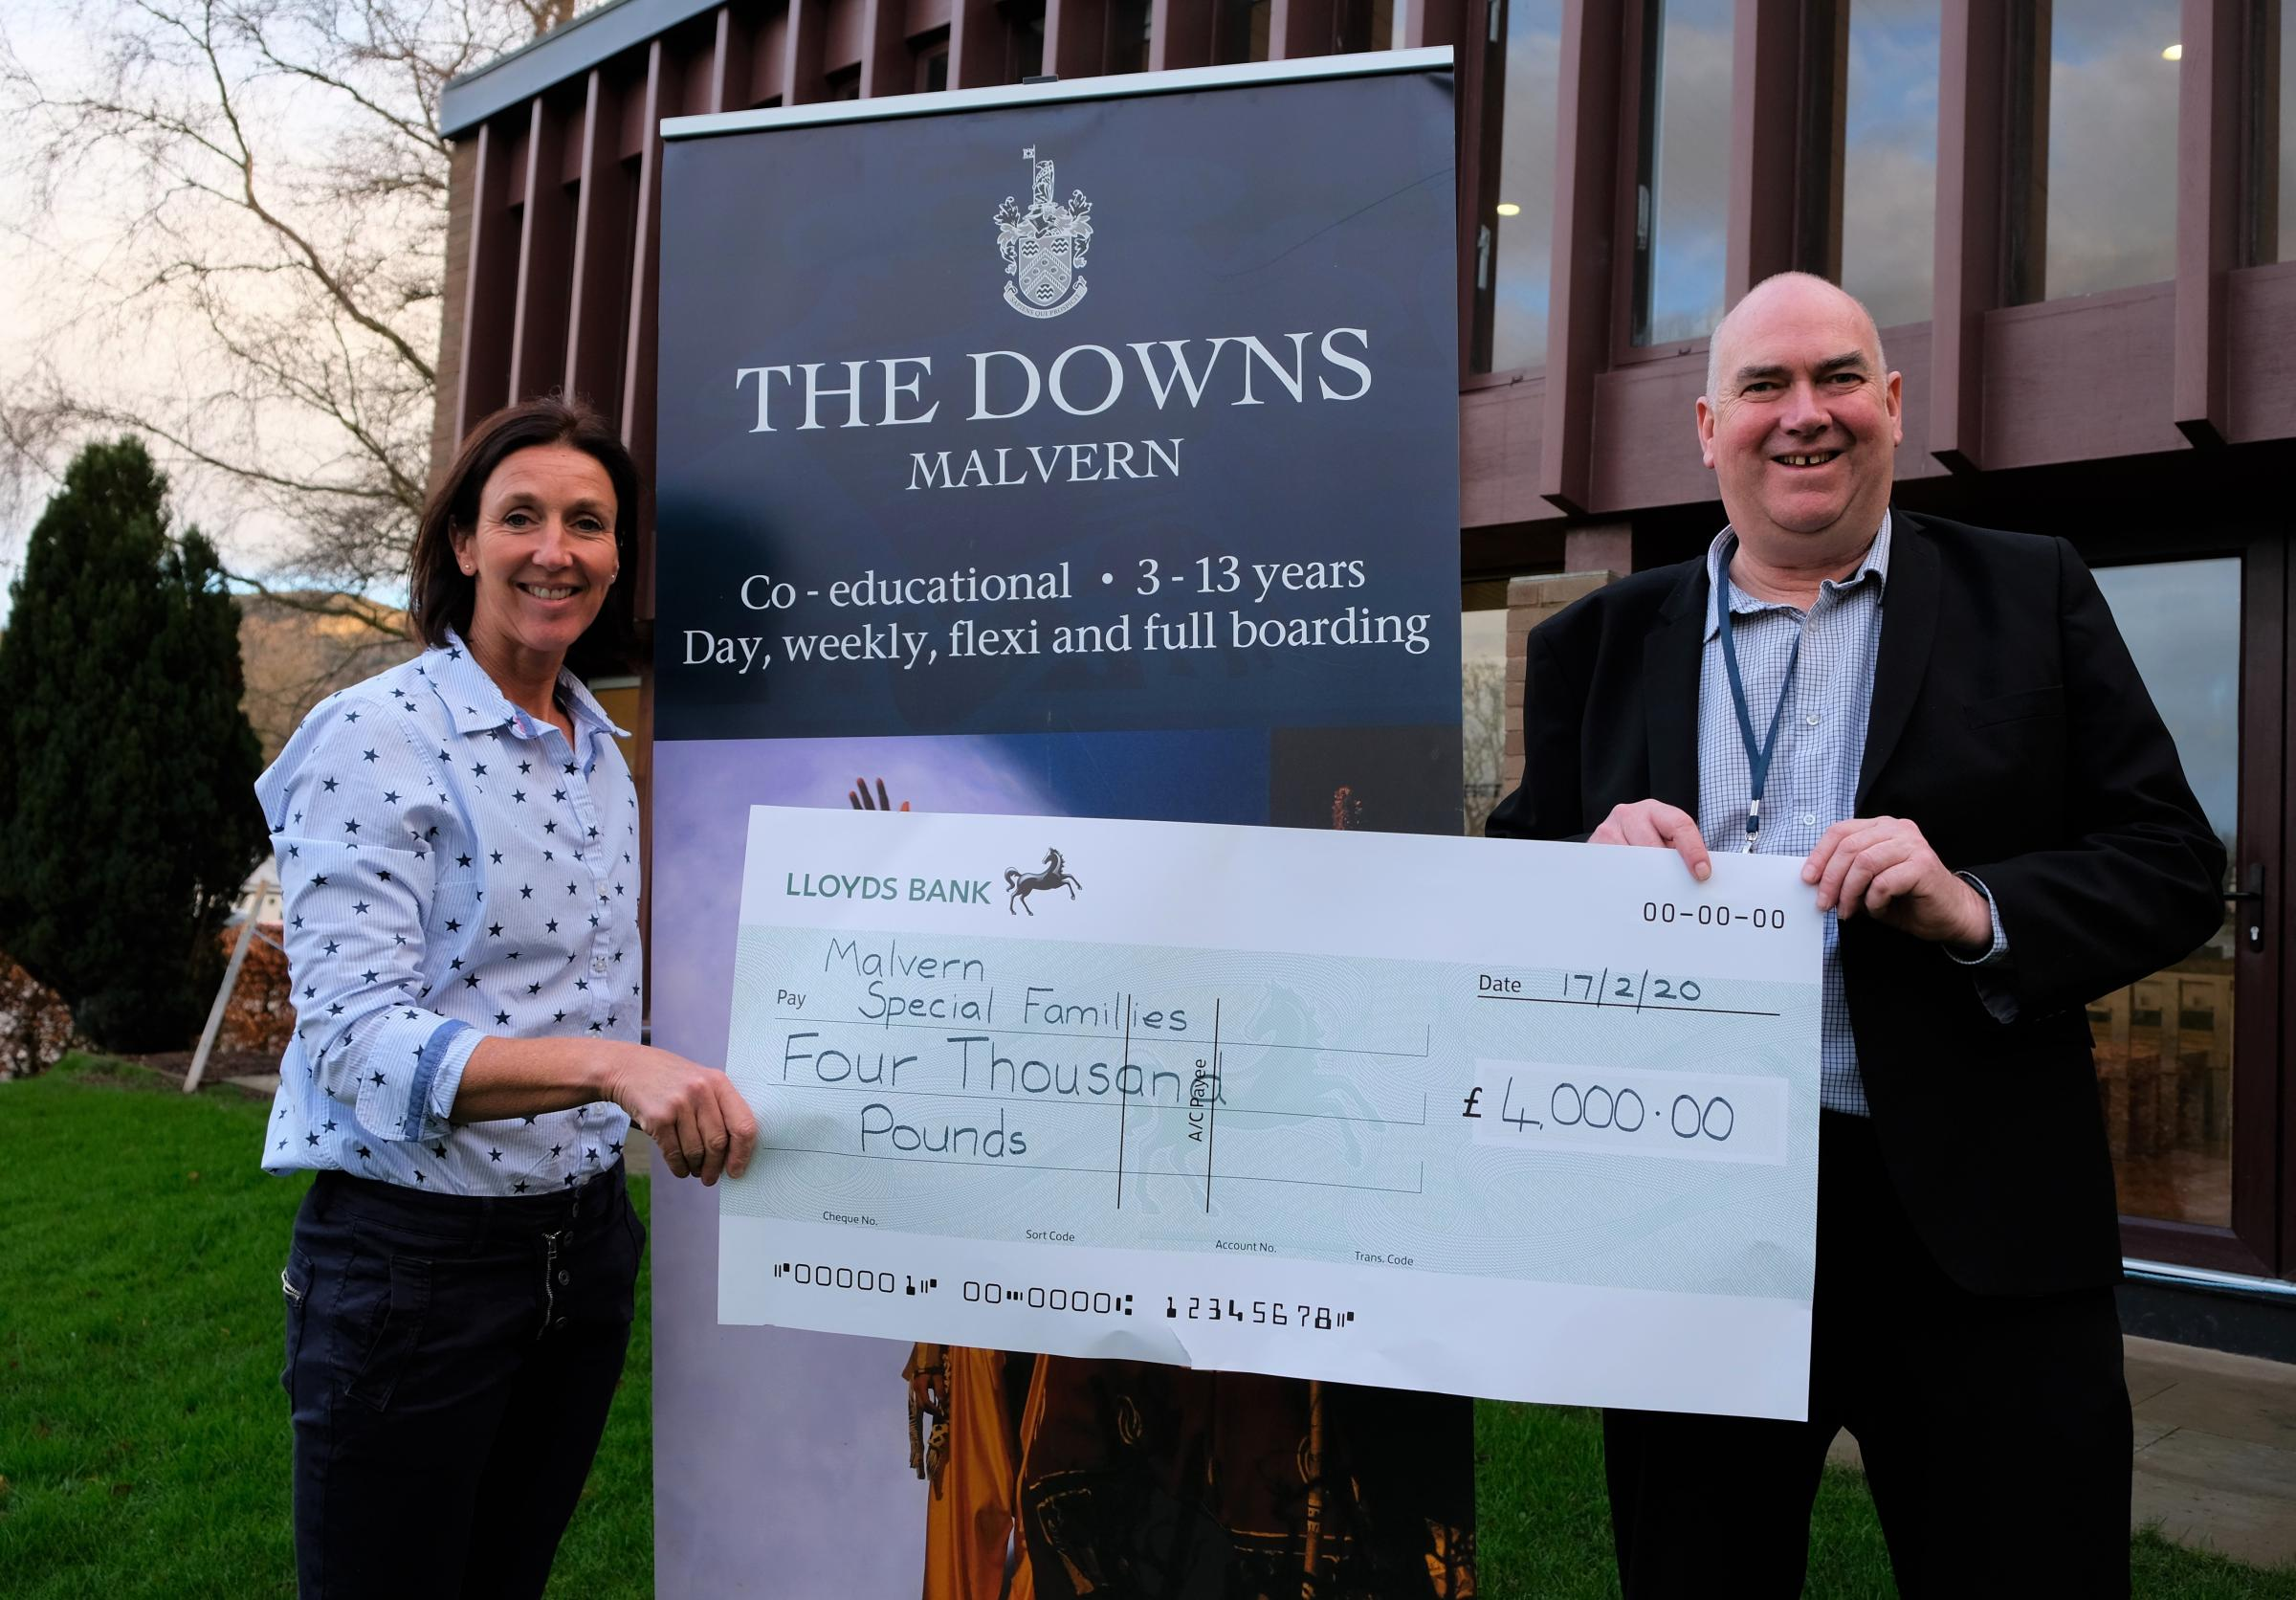 School raises £4,000 for charity which helps children with disabilities